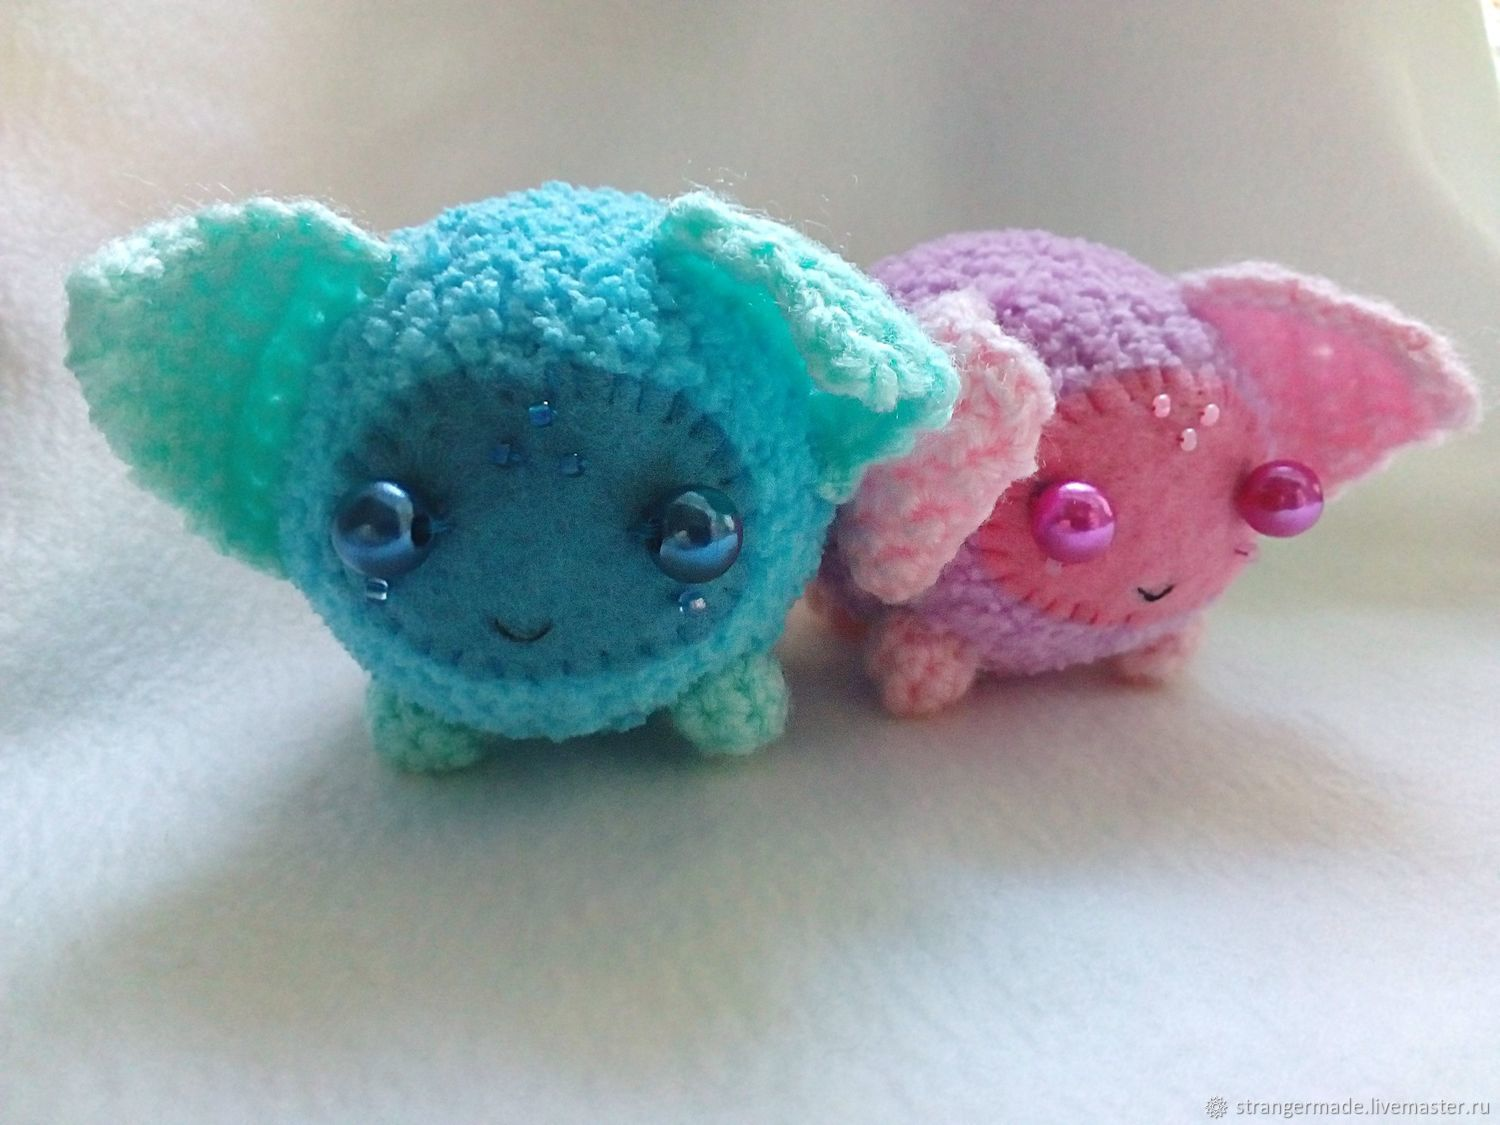 Zhi and Shi cute couple amigurumi monsters, Fun, Ekaterinburg,  Фото №1